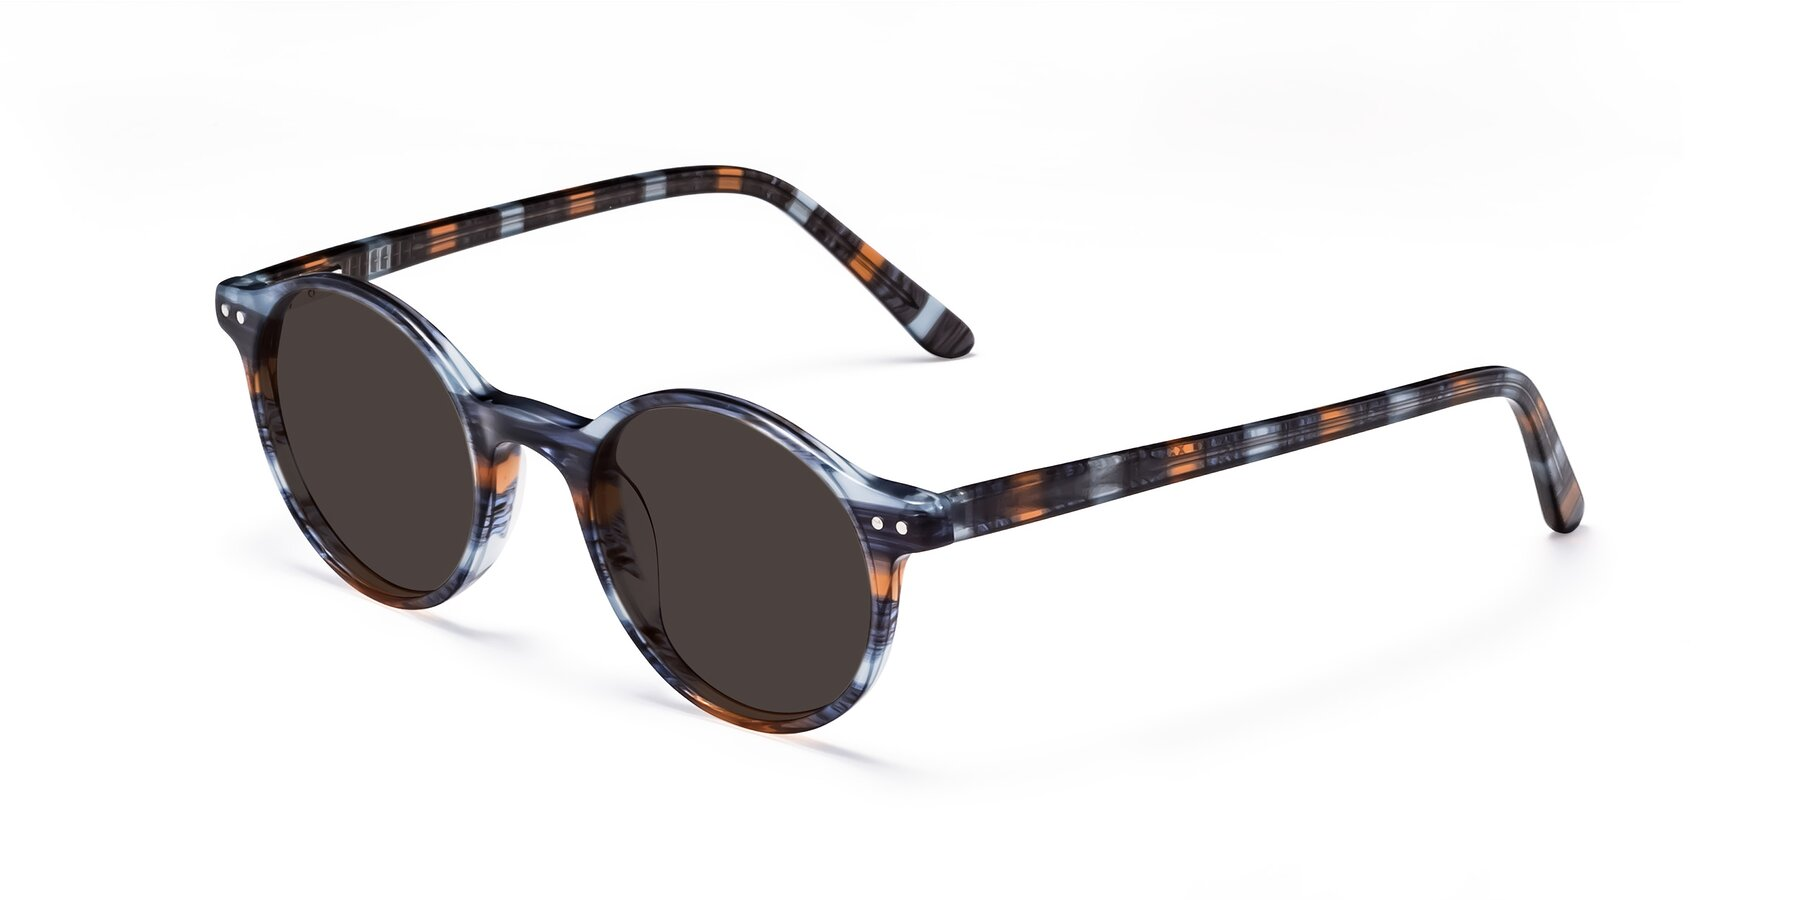 Angle of 17519 in Stripe Blue Brown with Gray Tinted Lenses